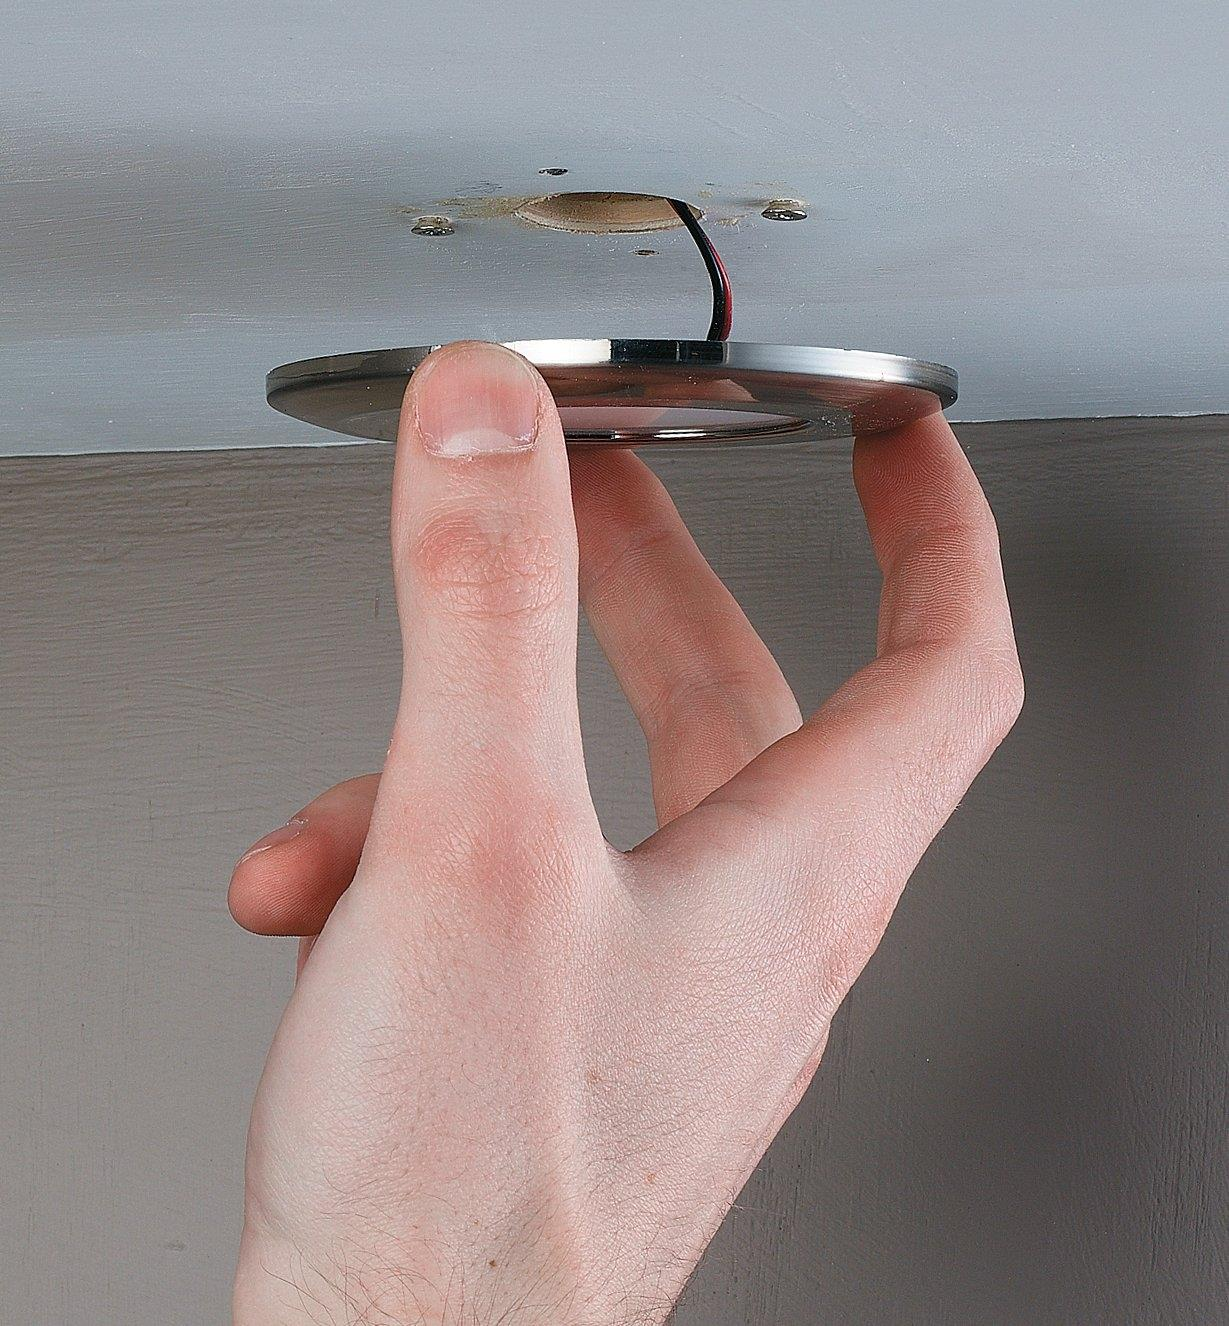 Installing a wafer light in a ceiling